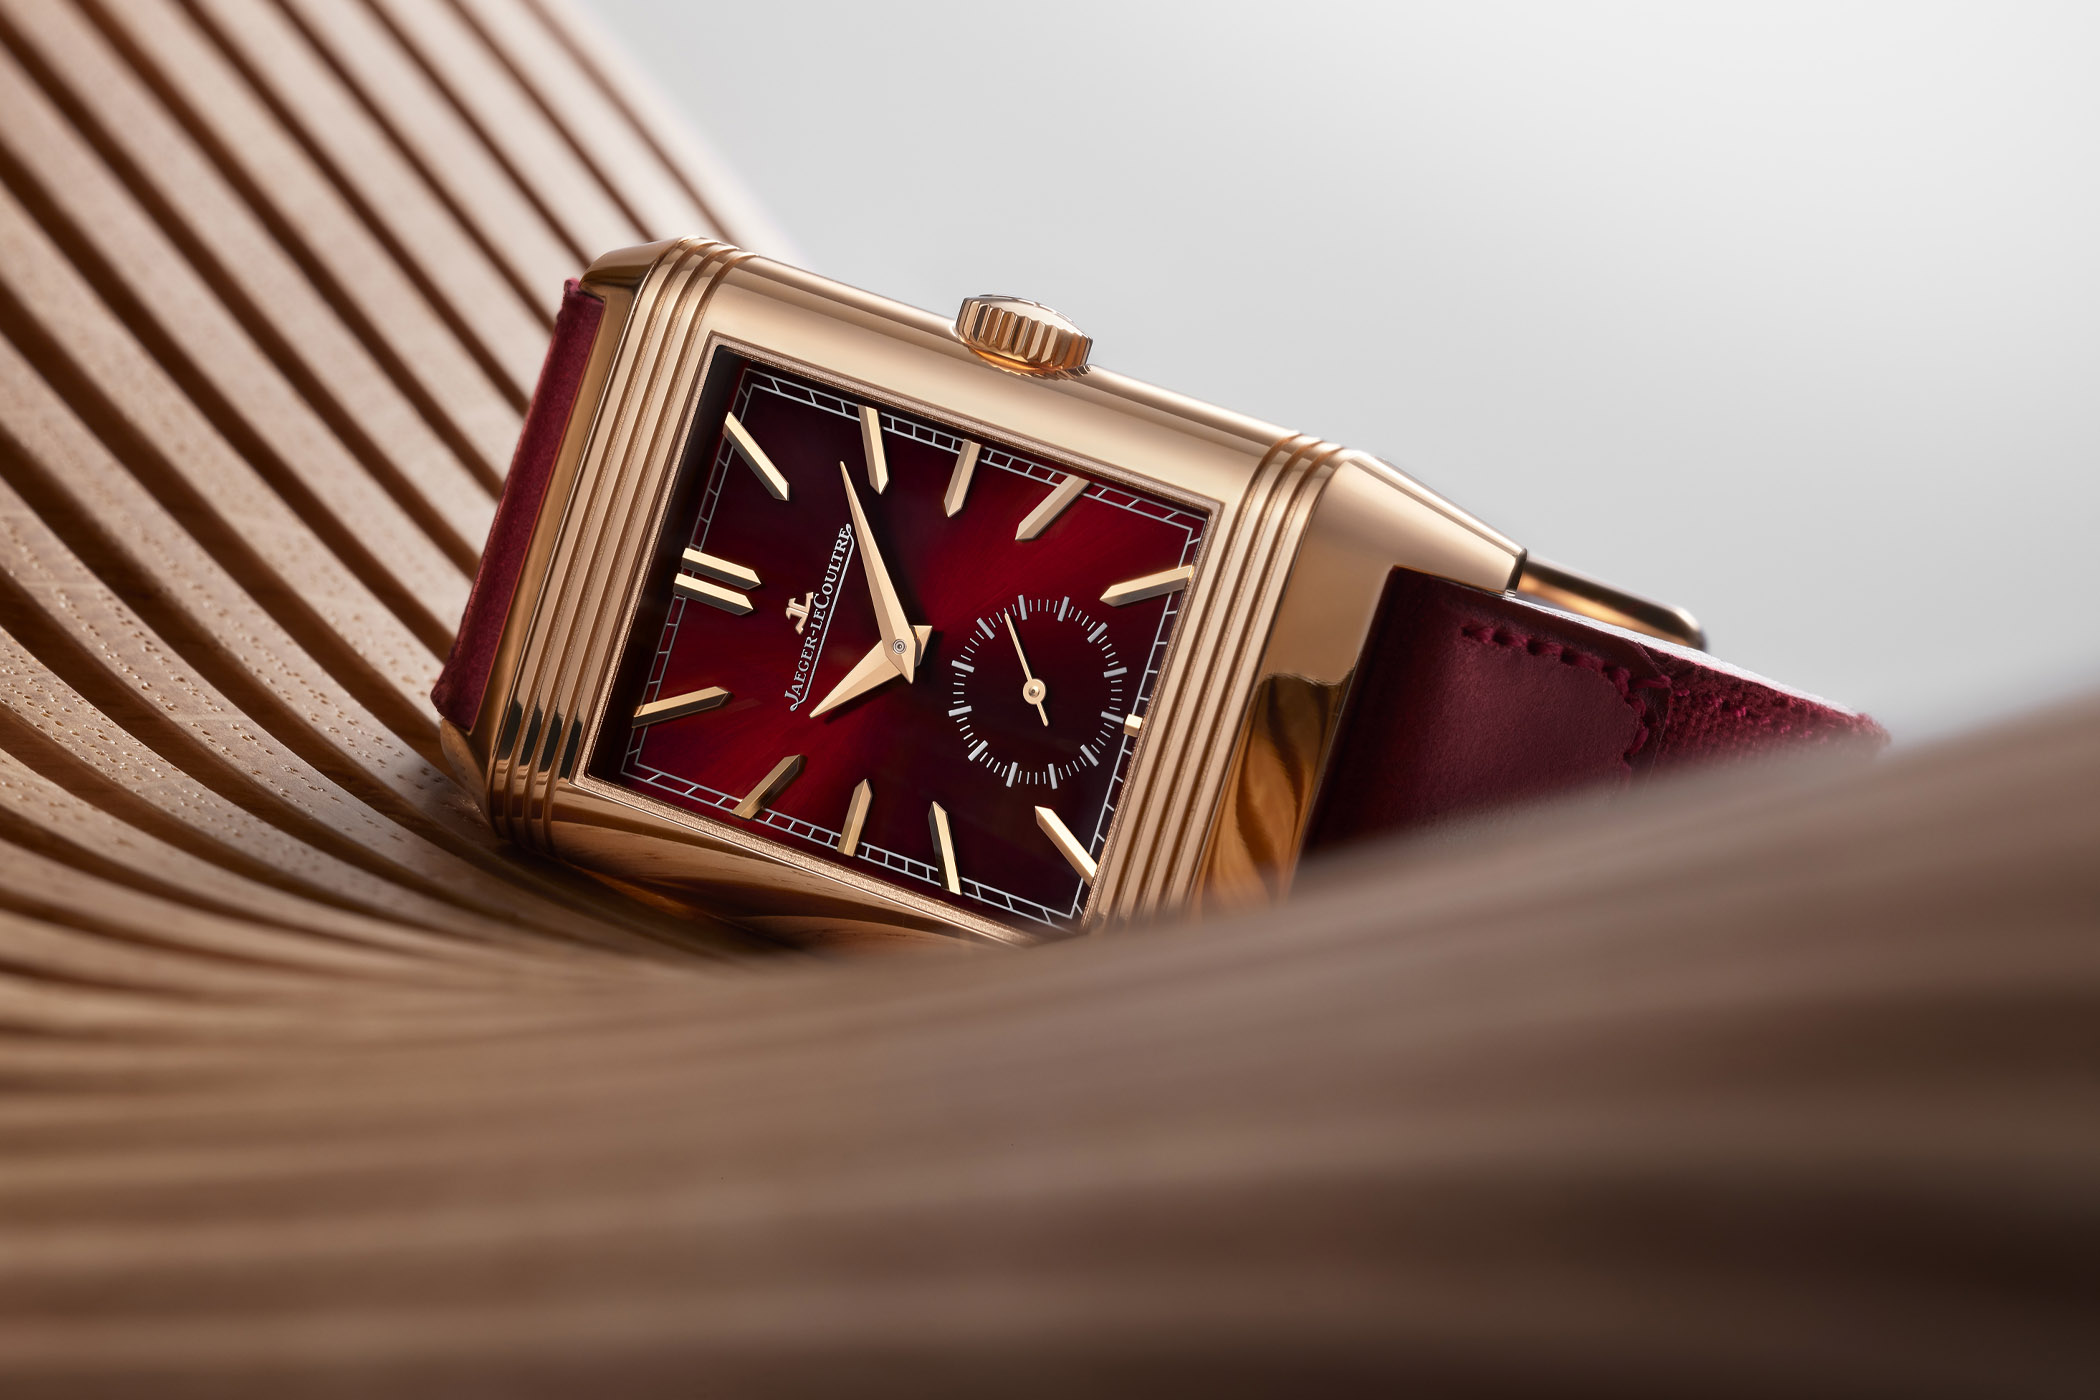 Jaeger LeCoultre Reverso Tribute DuoFace Fagliano Burgundy Limited Q398256J